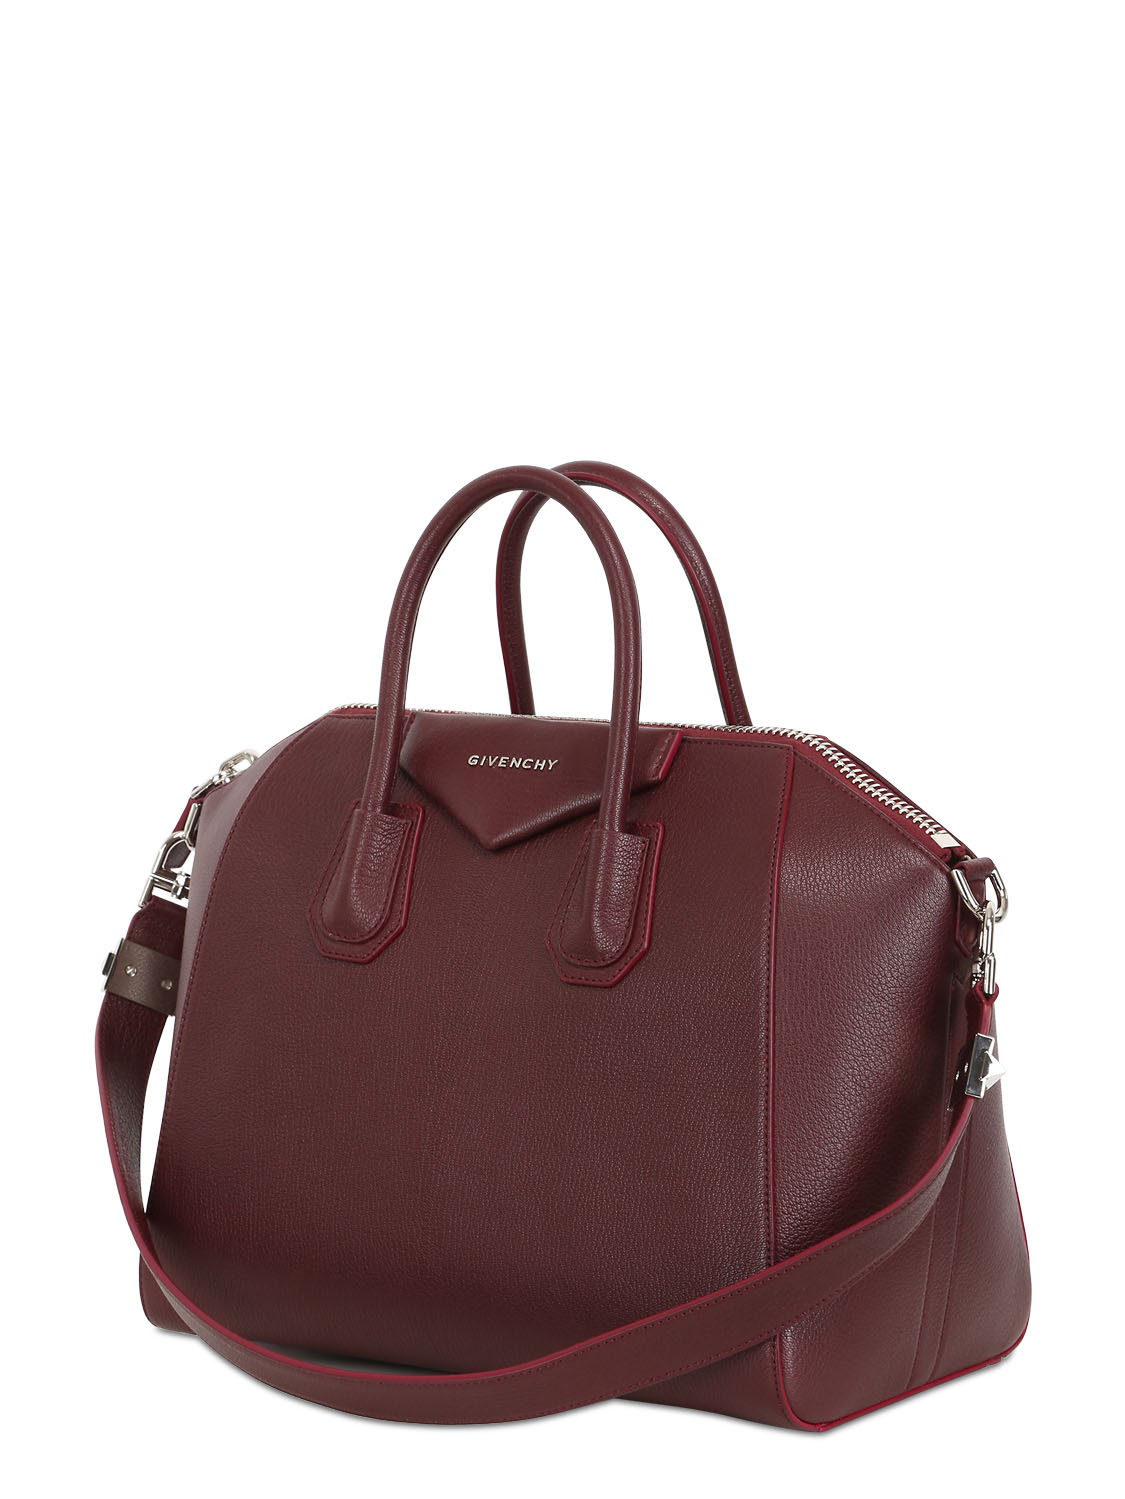 043fb9af325c Fabulous Lyst - Givenchy Antigona Leather Tote in Red PN28